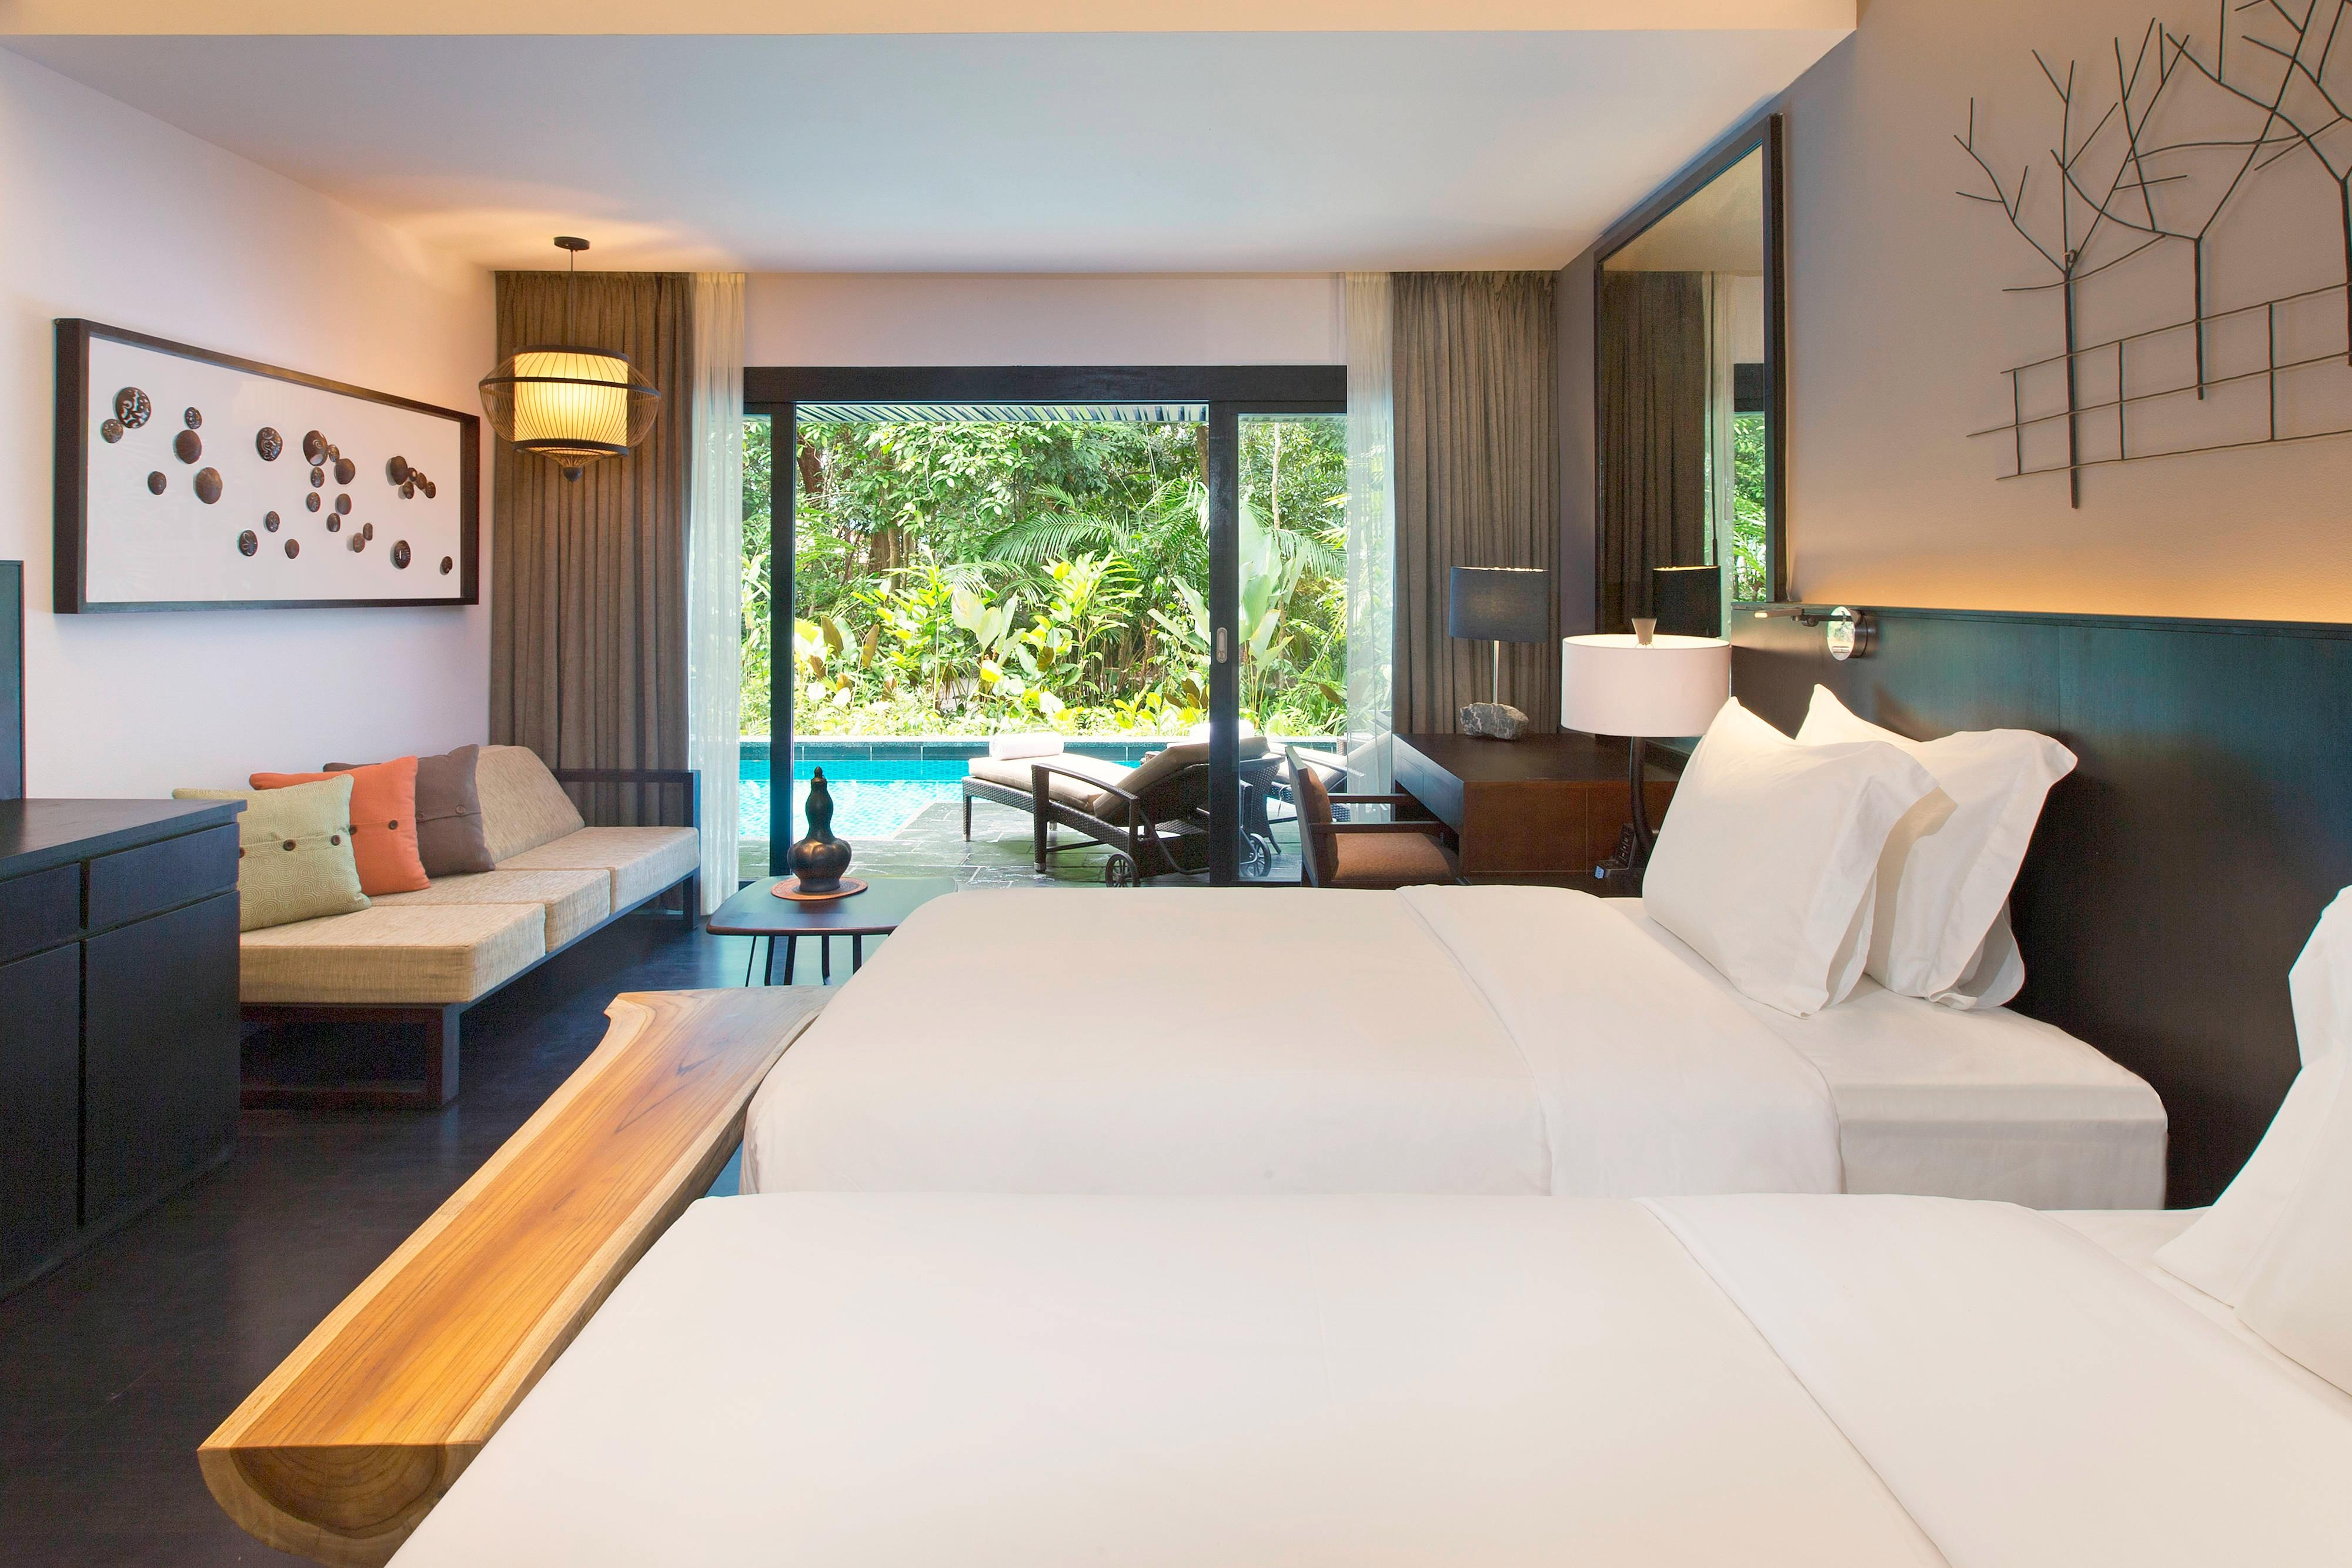 Hotel Rooms Amp Amenities The Andaman A Luxury Collection